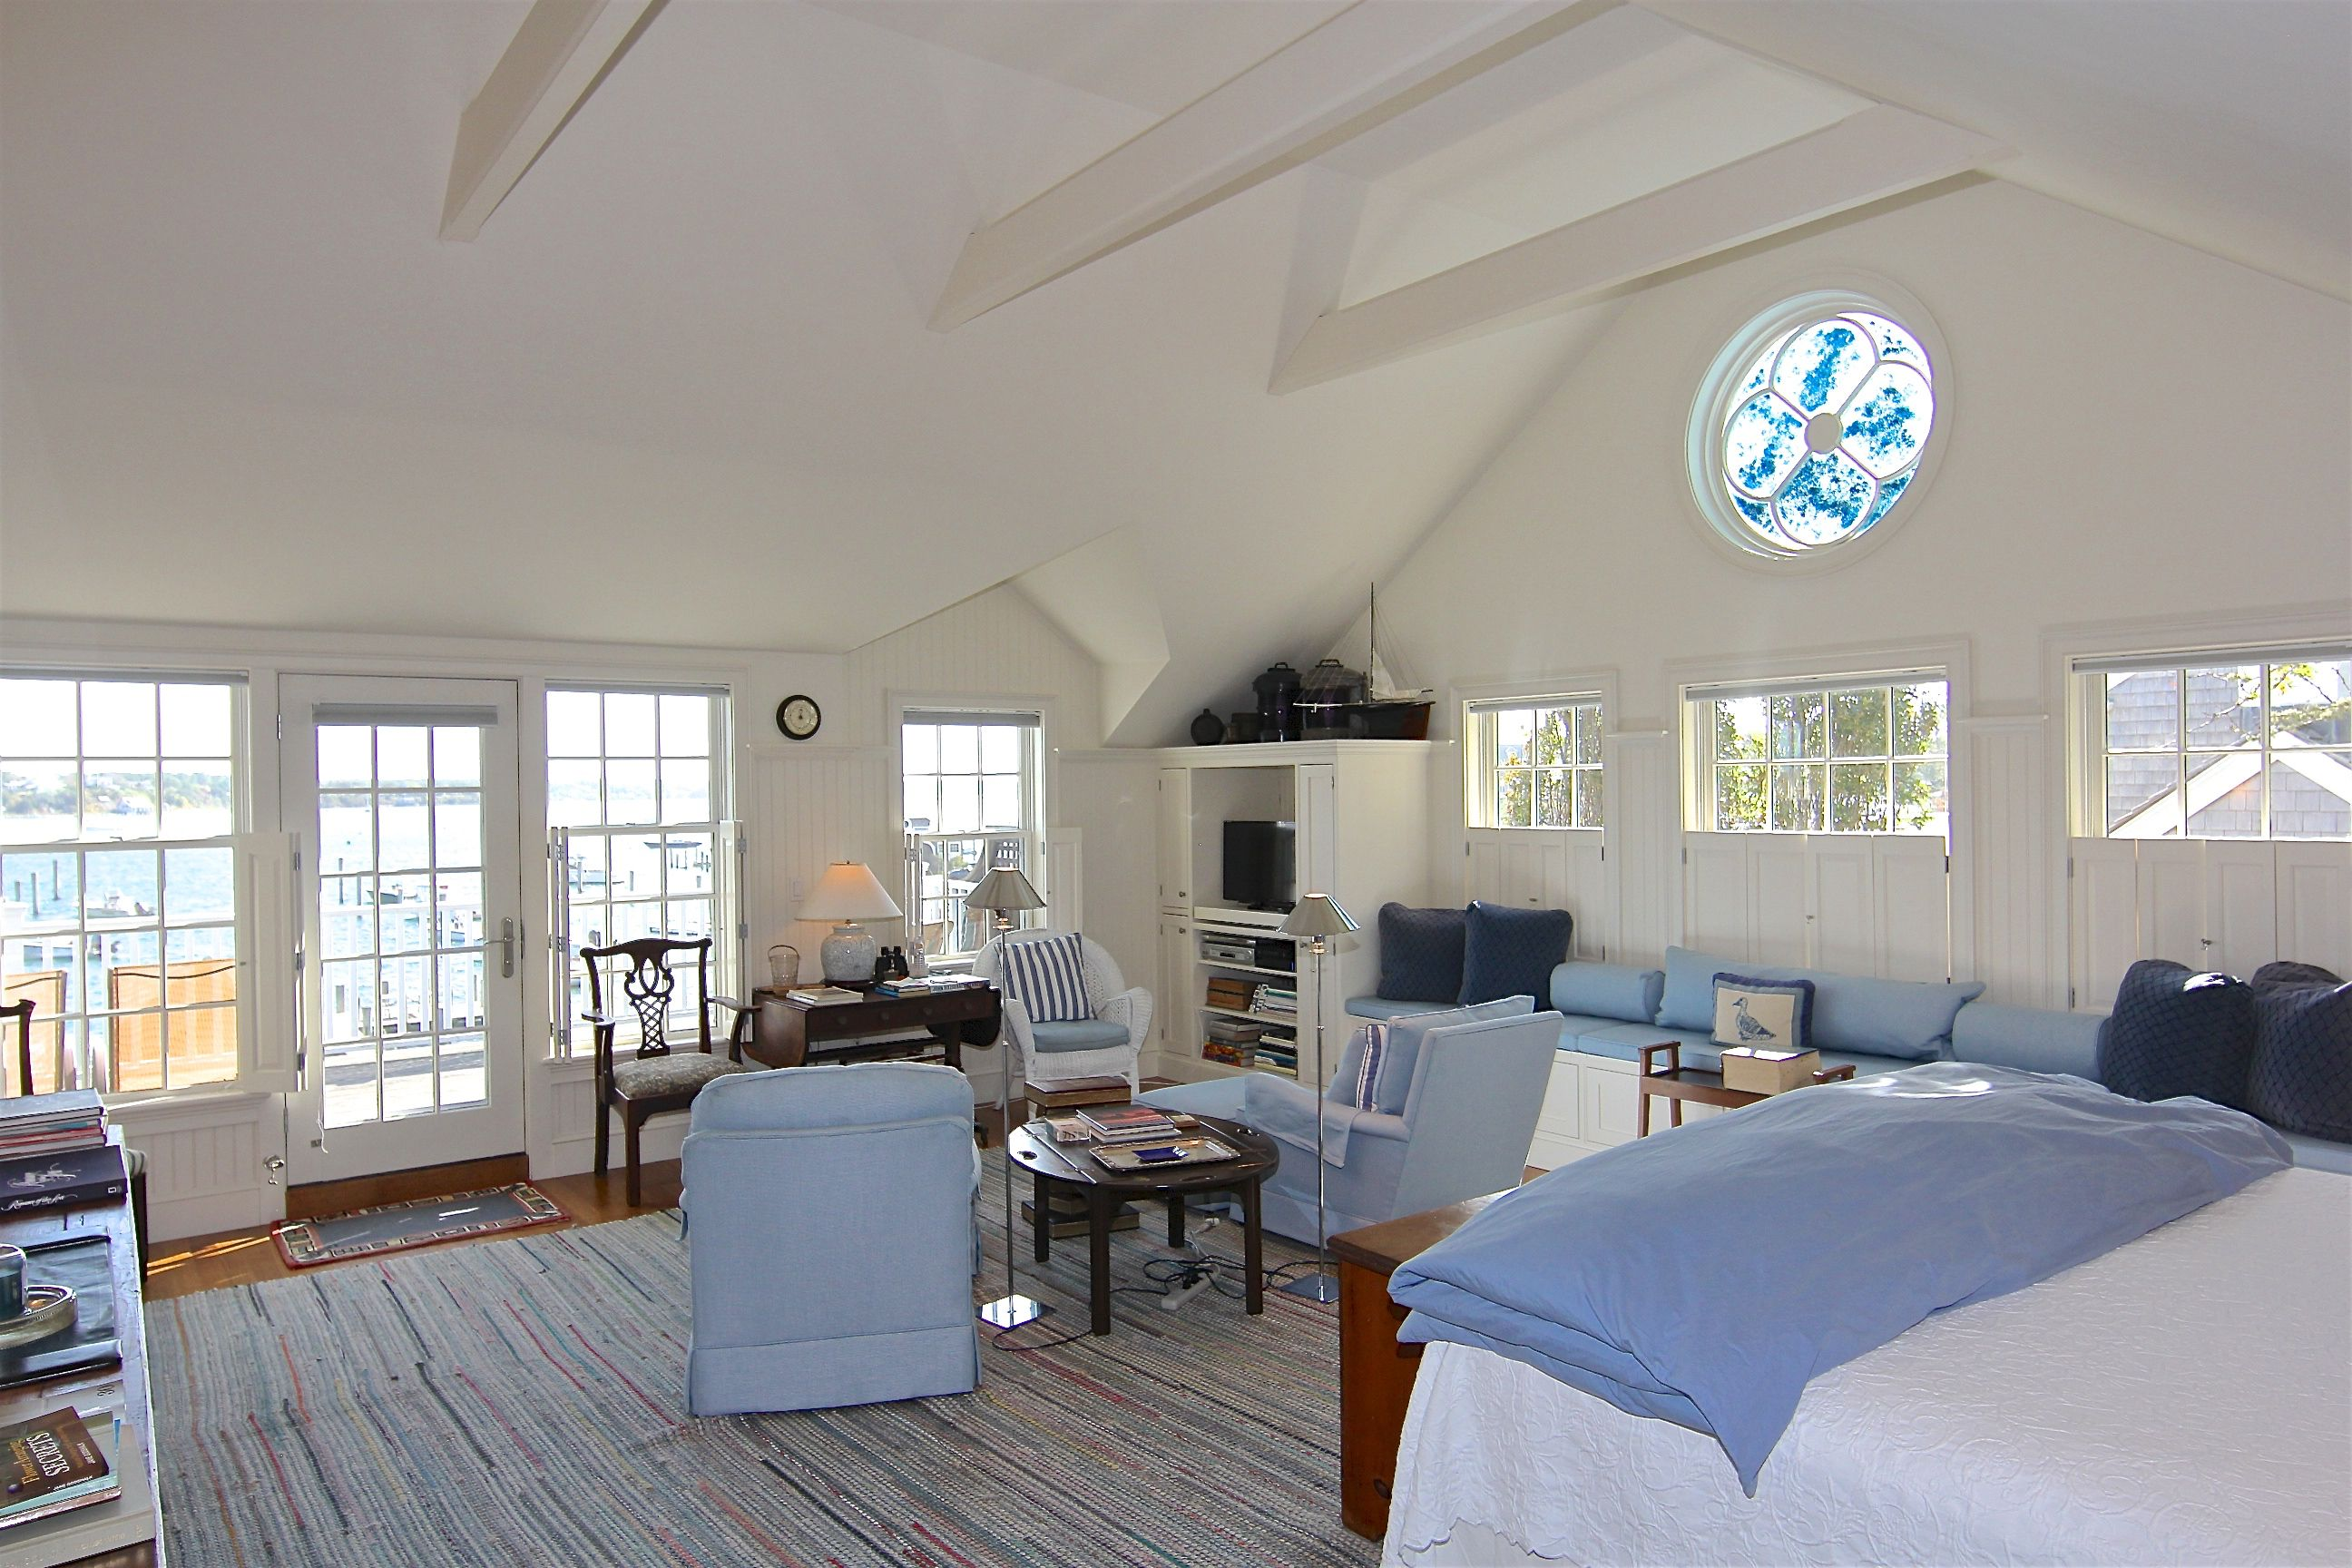 Additional photo for property listing at 53 South Water Street 53 Water Edgartown, Massachusetts,02539 Stati Uniti